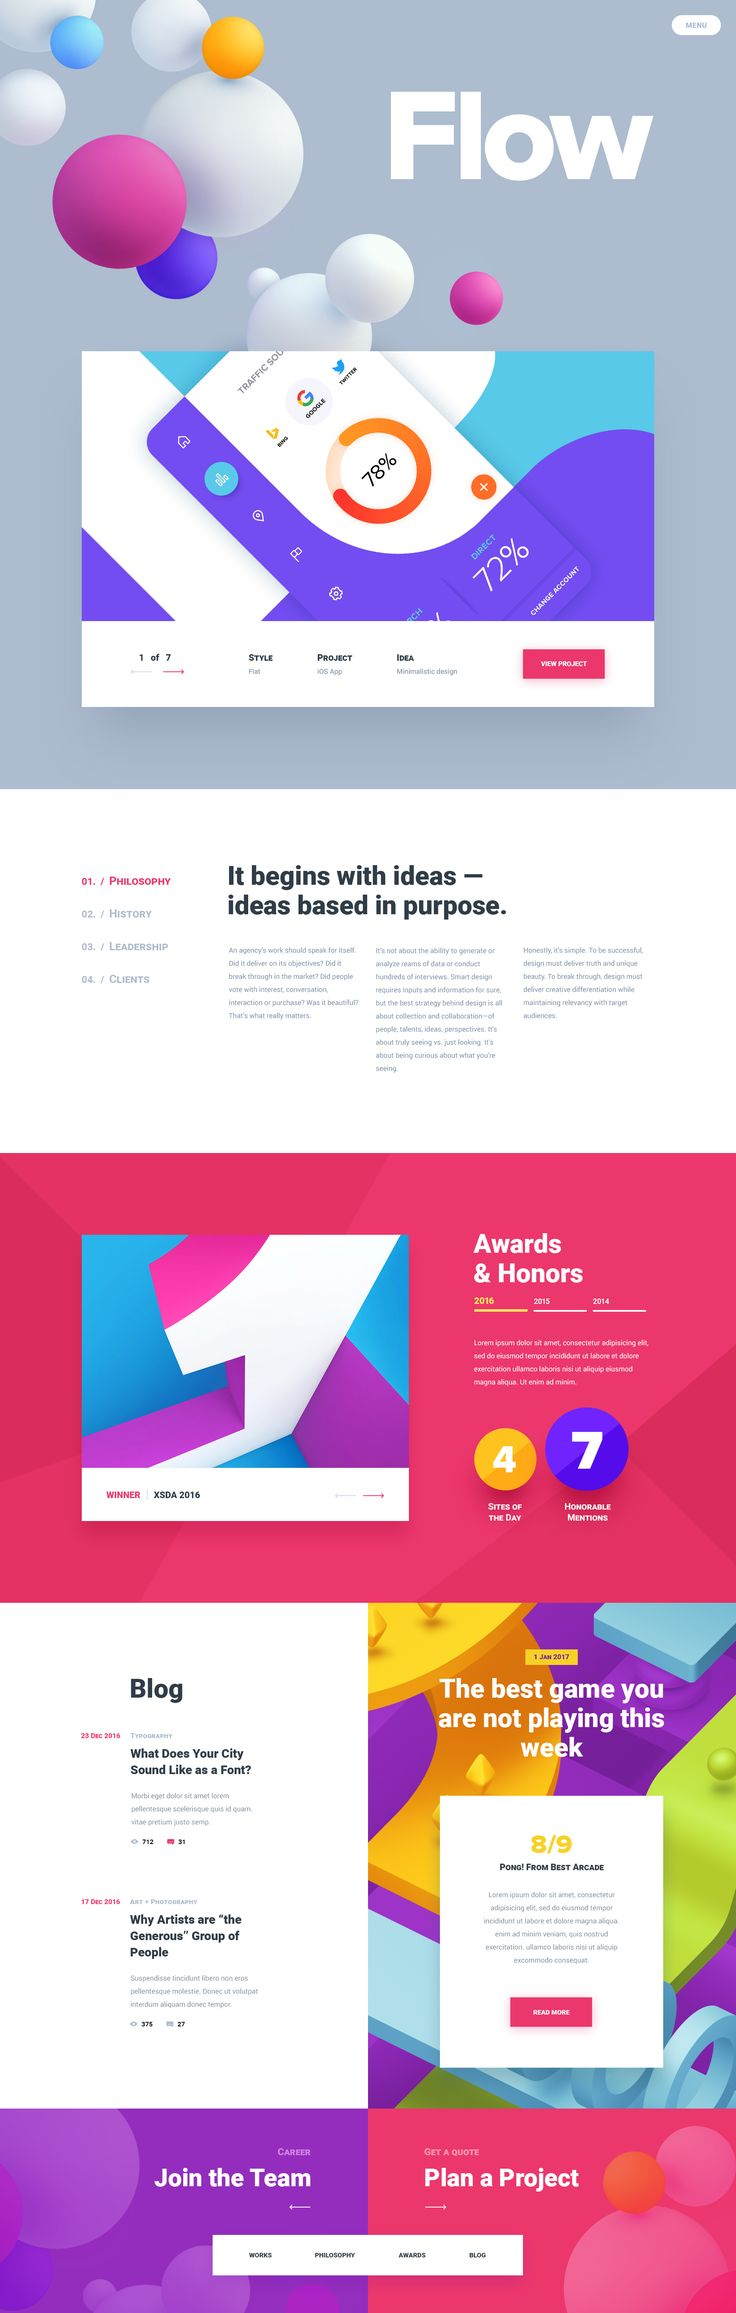 Ui Design Ideas my projects concept best ui designapp Flow Design Studio Colorful Ui Design Concept By Mike Creative Mints